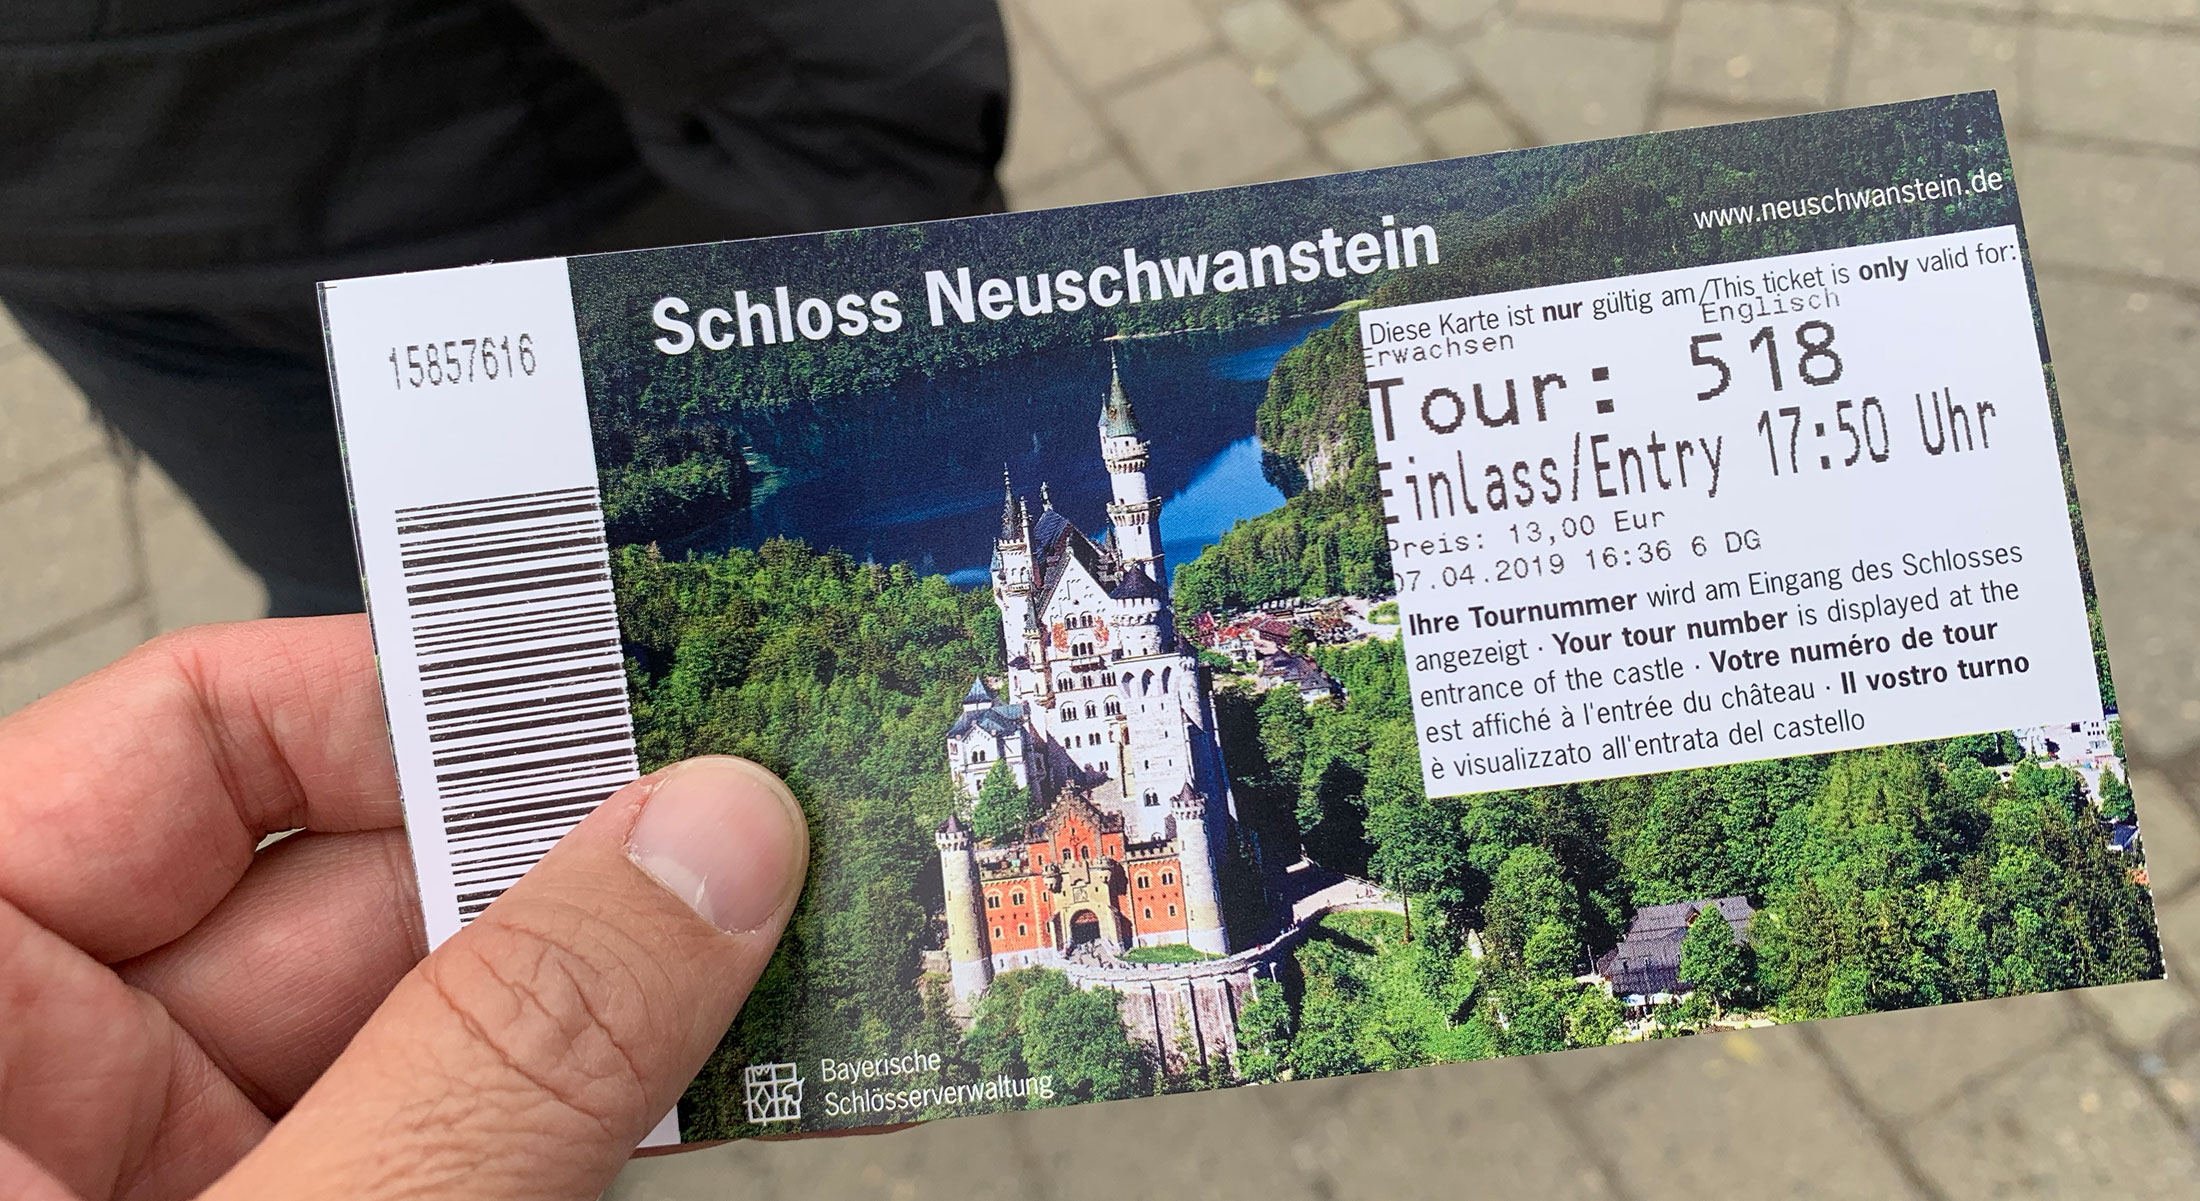 A 13Euro ticket gives you access to the castle and a scheduled guided tour